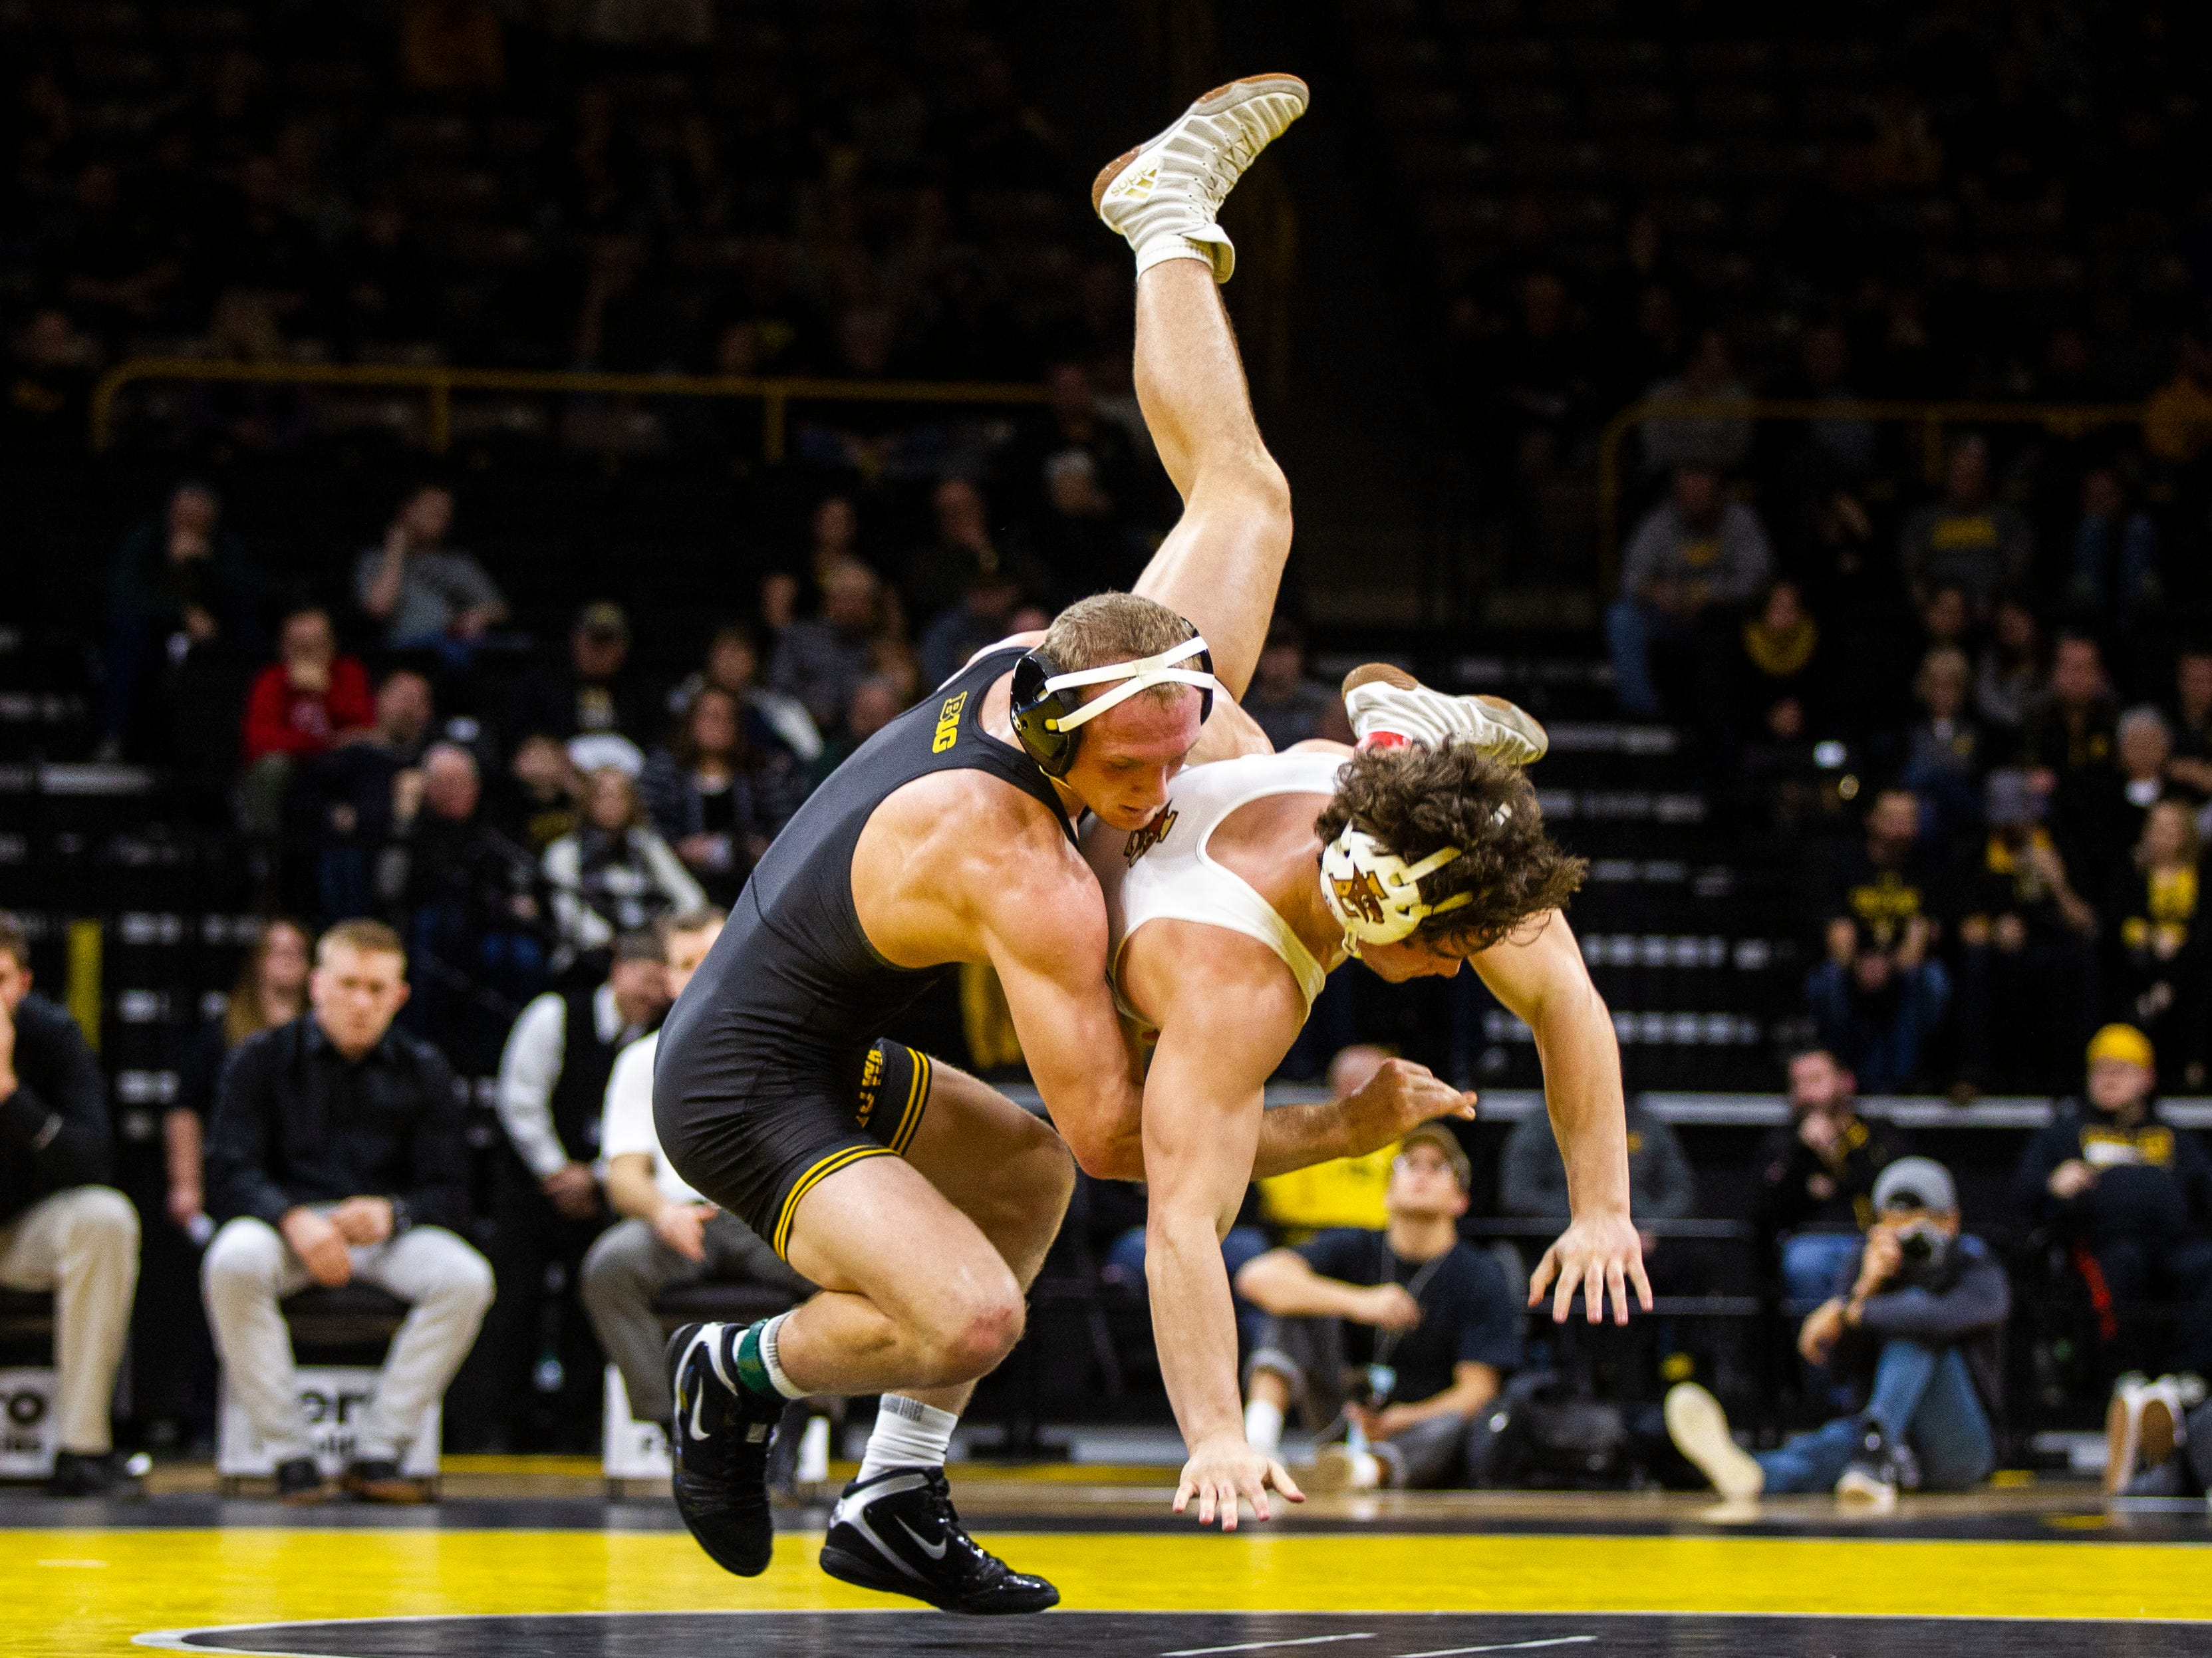 Iowa's Kaleb Young, left, wrestles Lehigh's Josh Humphreys at 157 during a NCAA wrestling dual on Saturday, Dec. 8, 2018, at Carver-Hawkeye Arena in Iowa City.